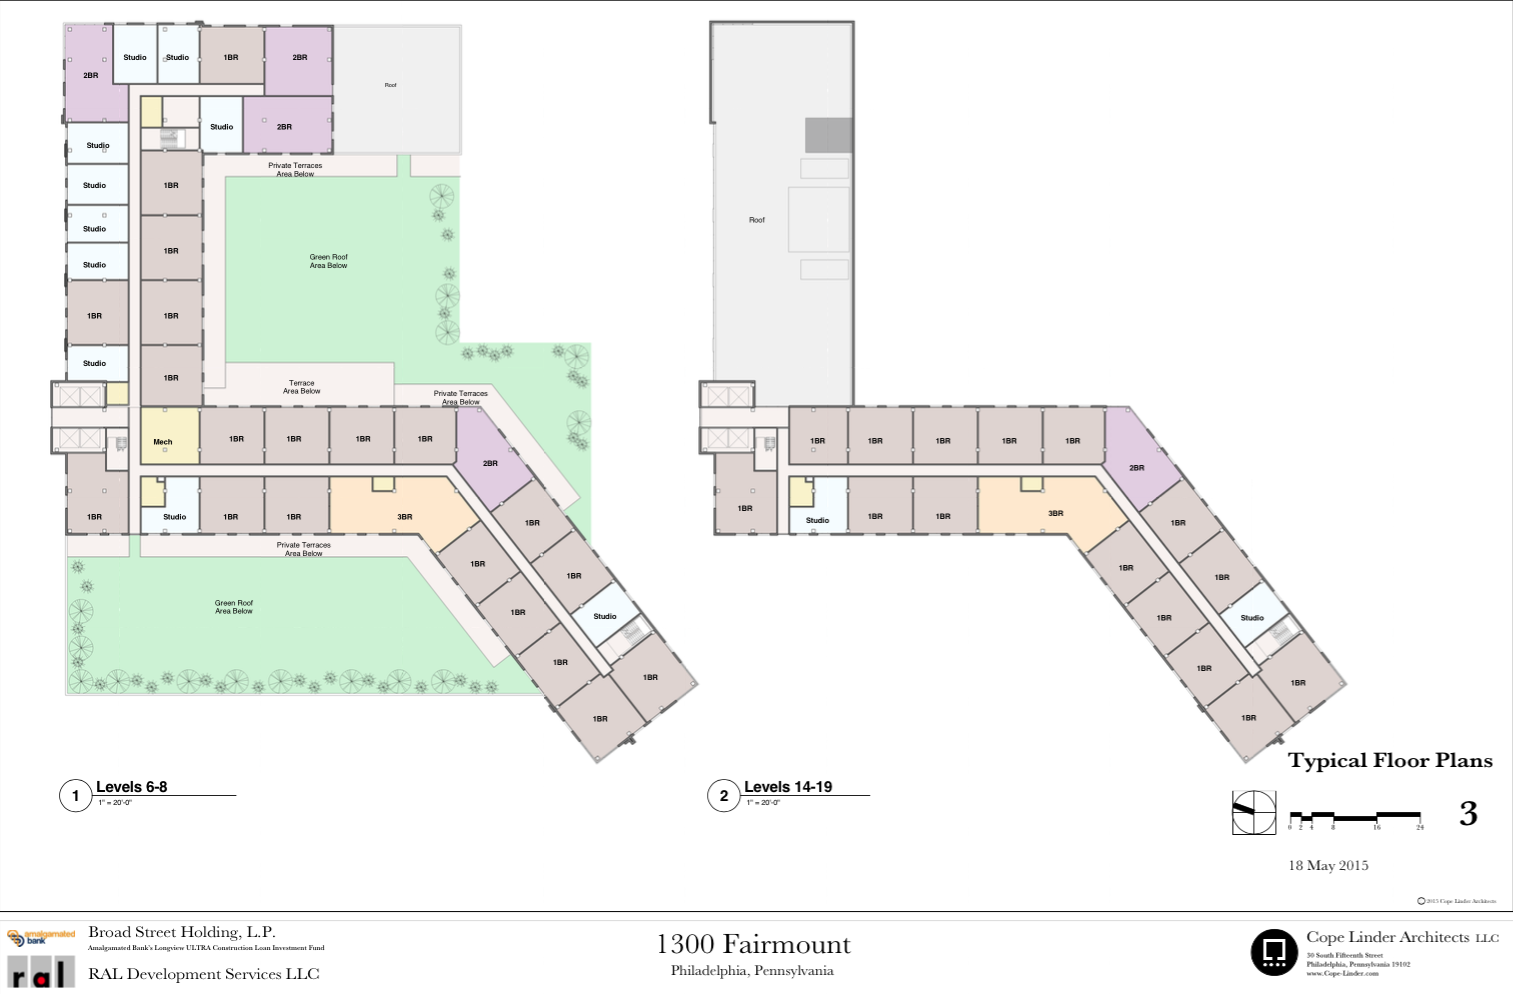 1300 Fairmount Site Plan | Cope Linder Architects